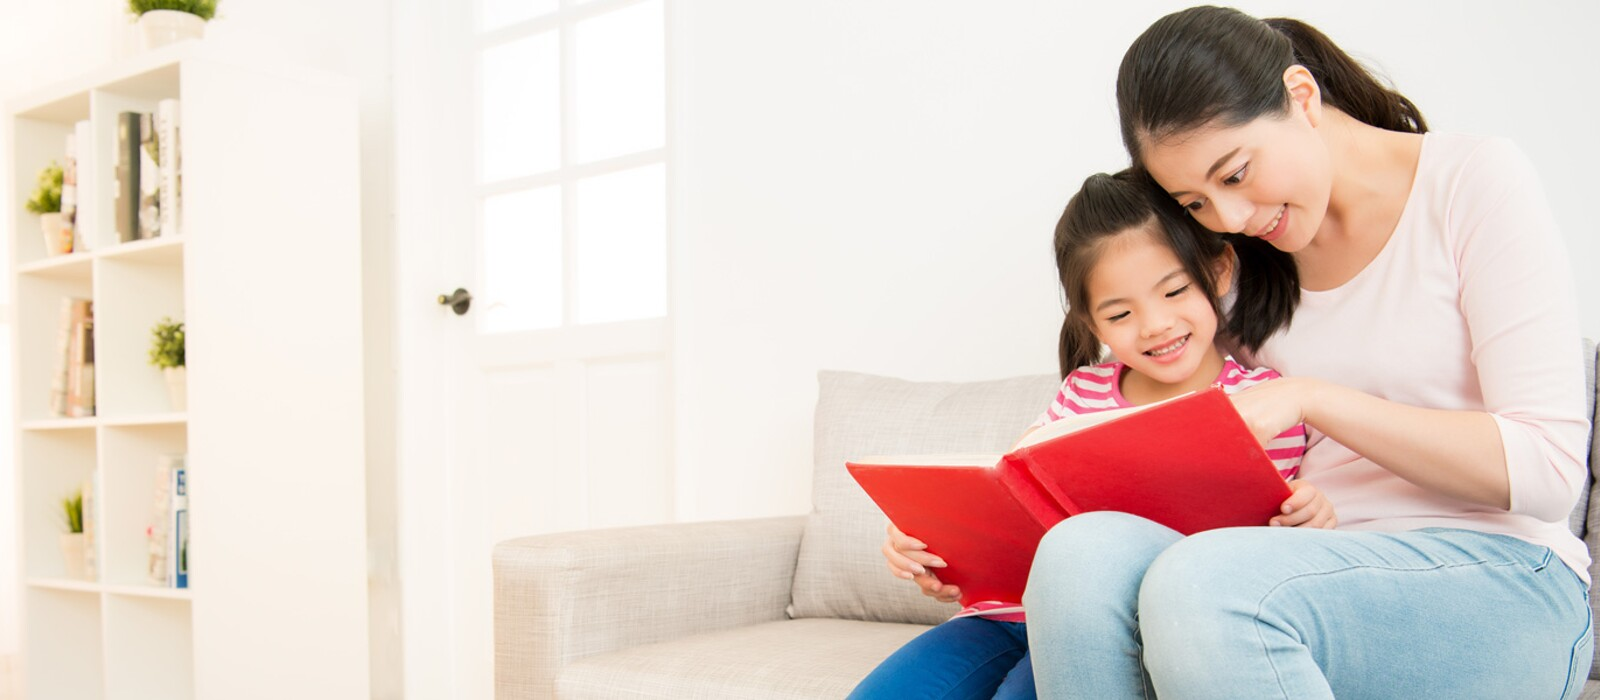 9 Ideas to Start Your Child Reading This Year